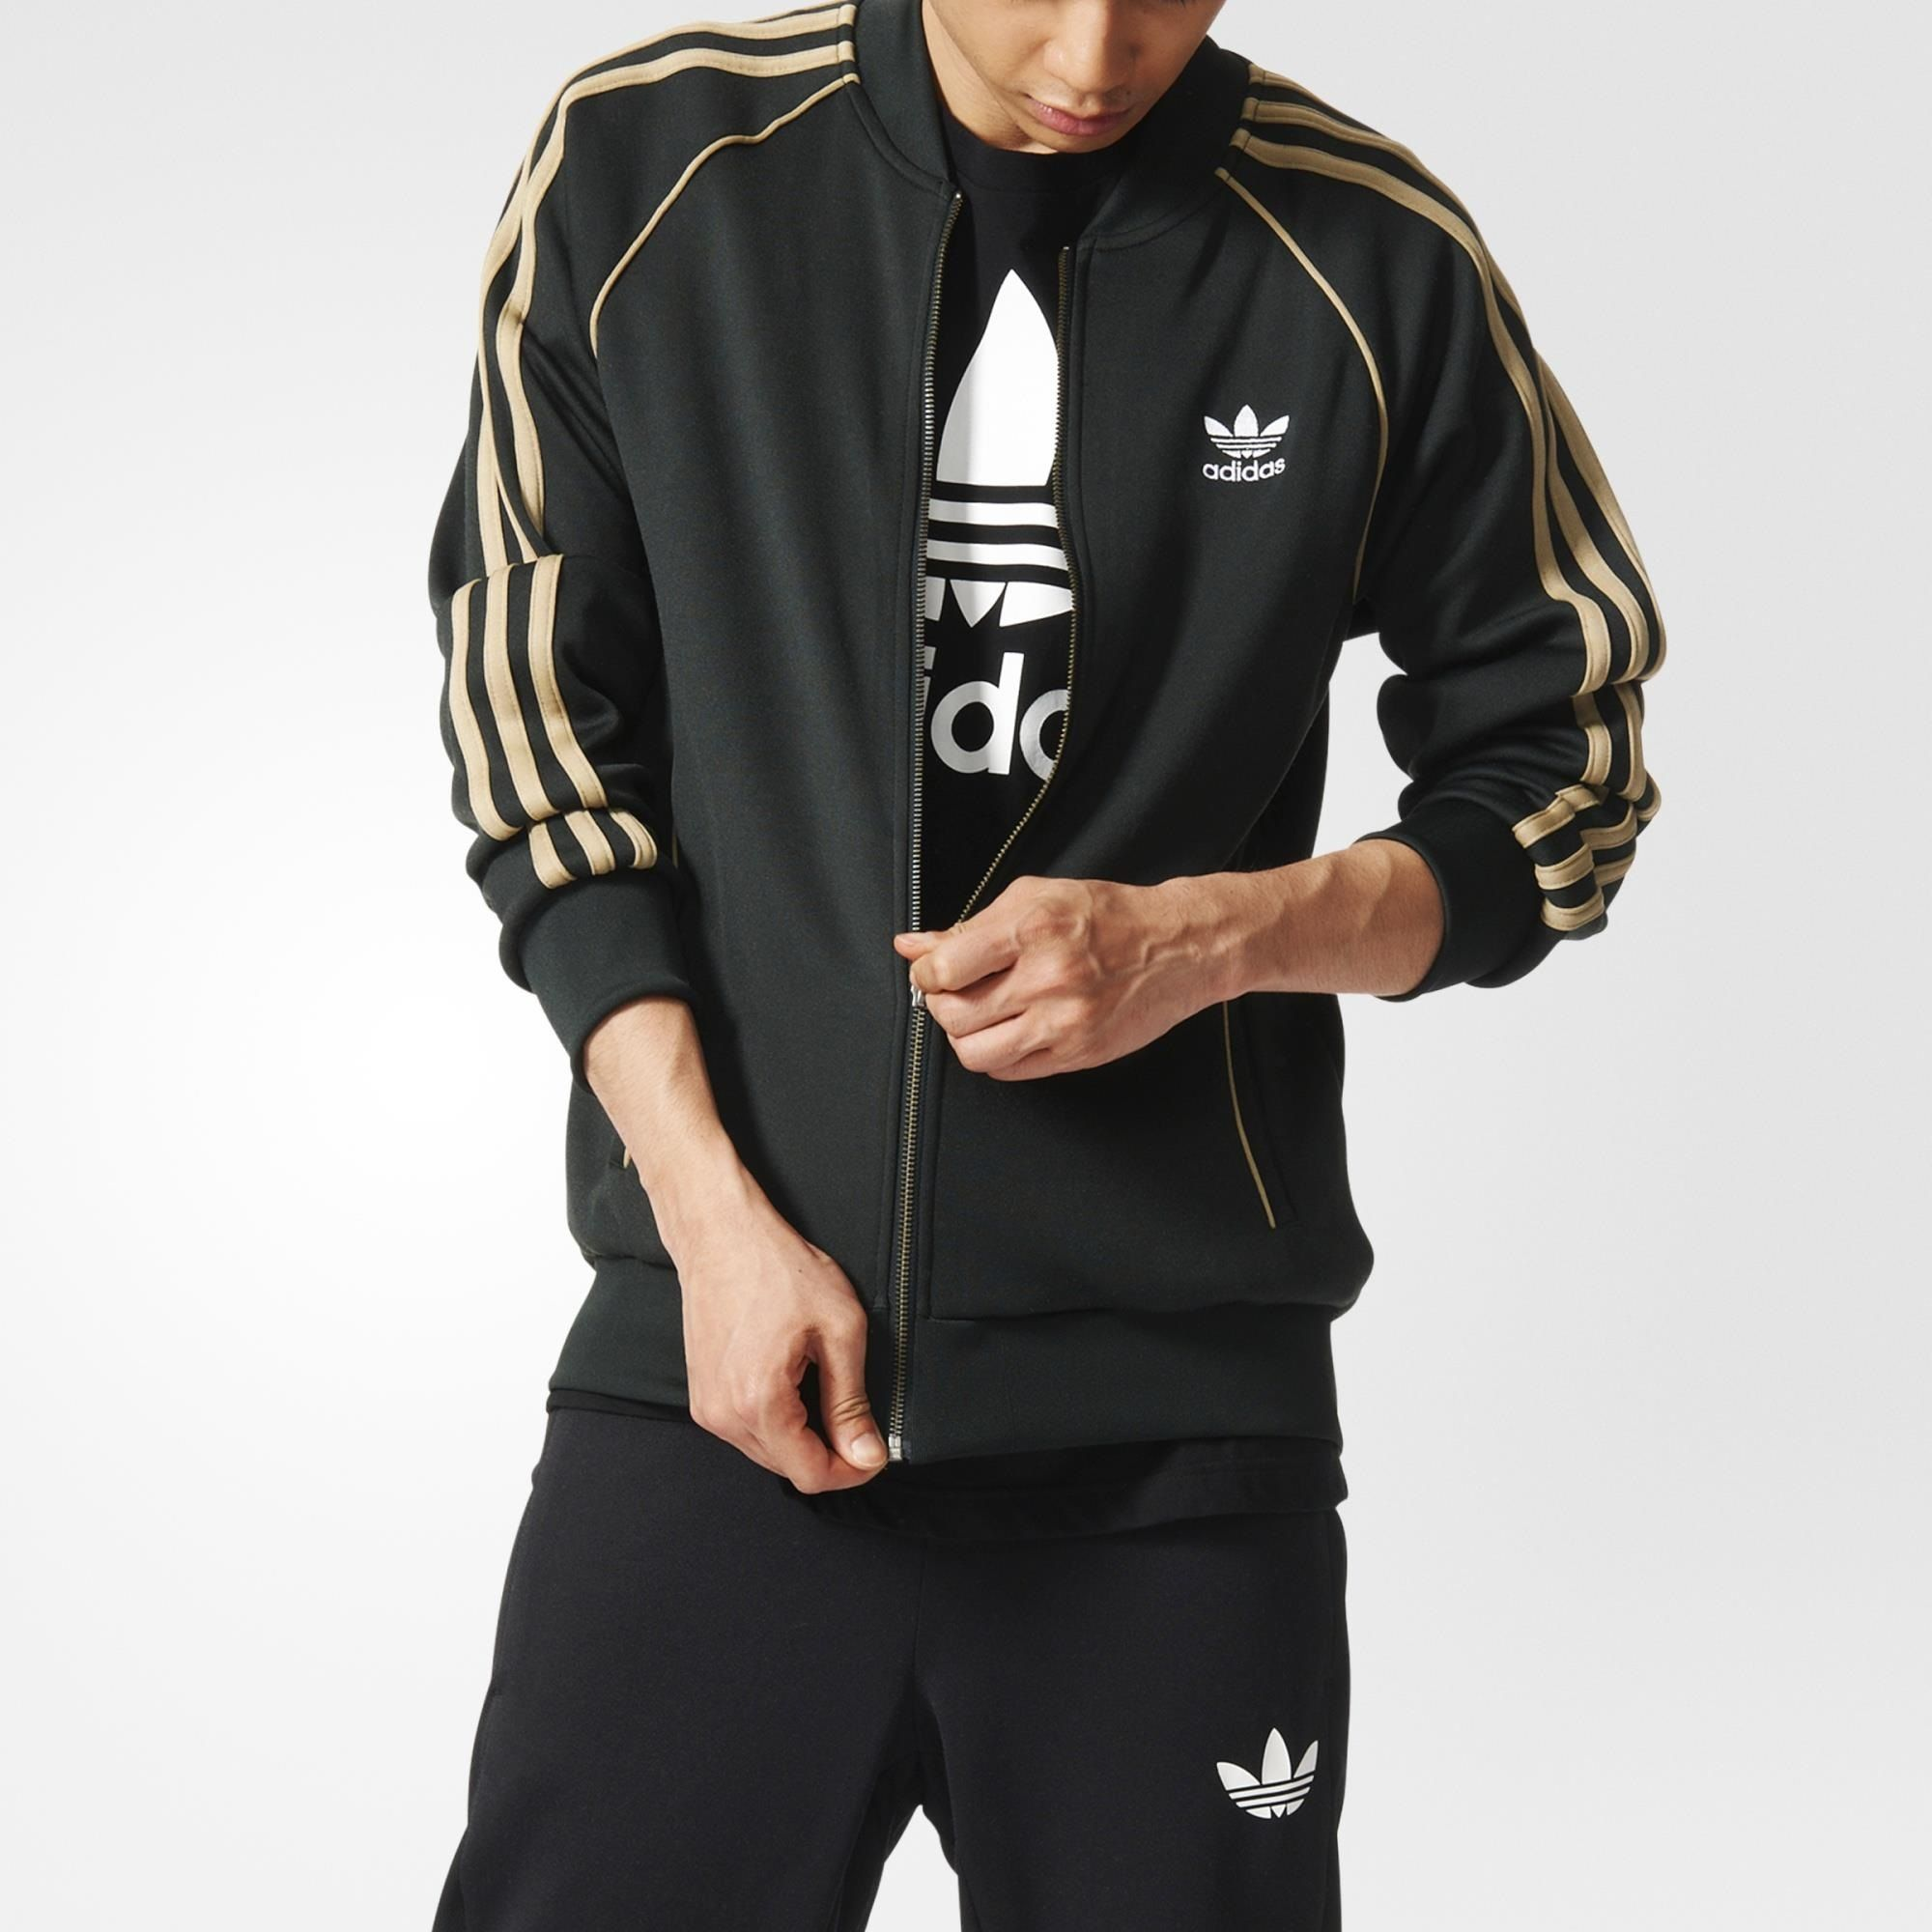 Adidas · This men's track jacket keeps the Superstar ...